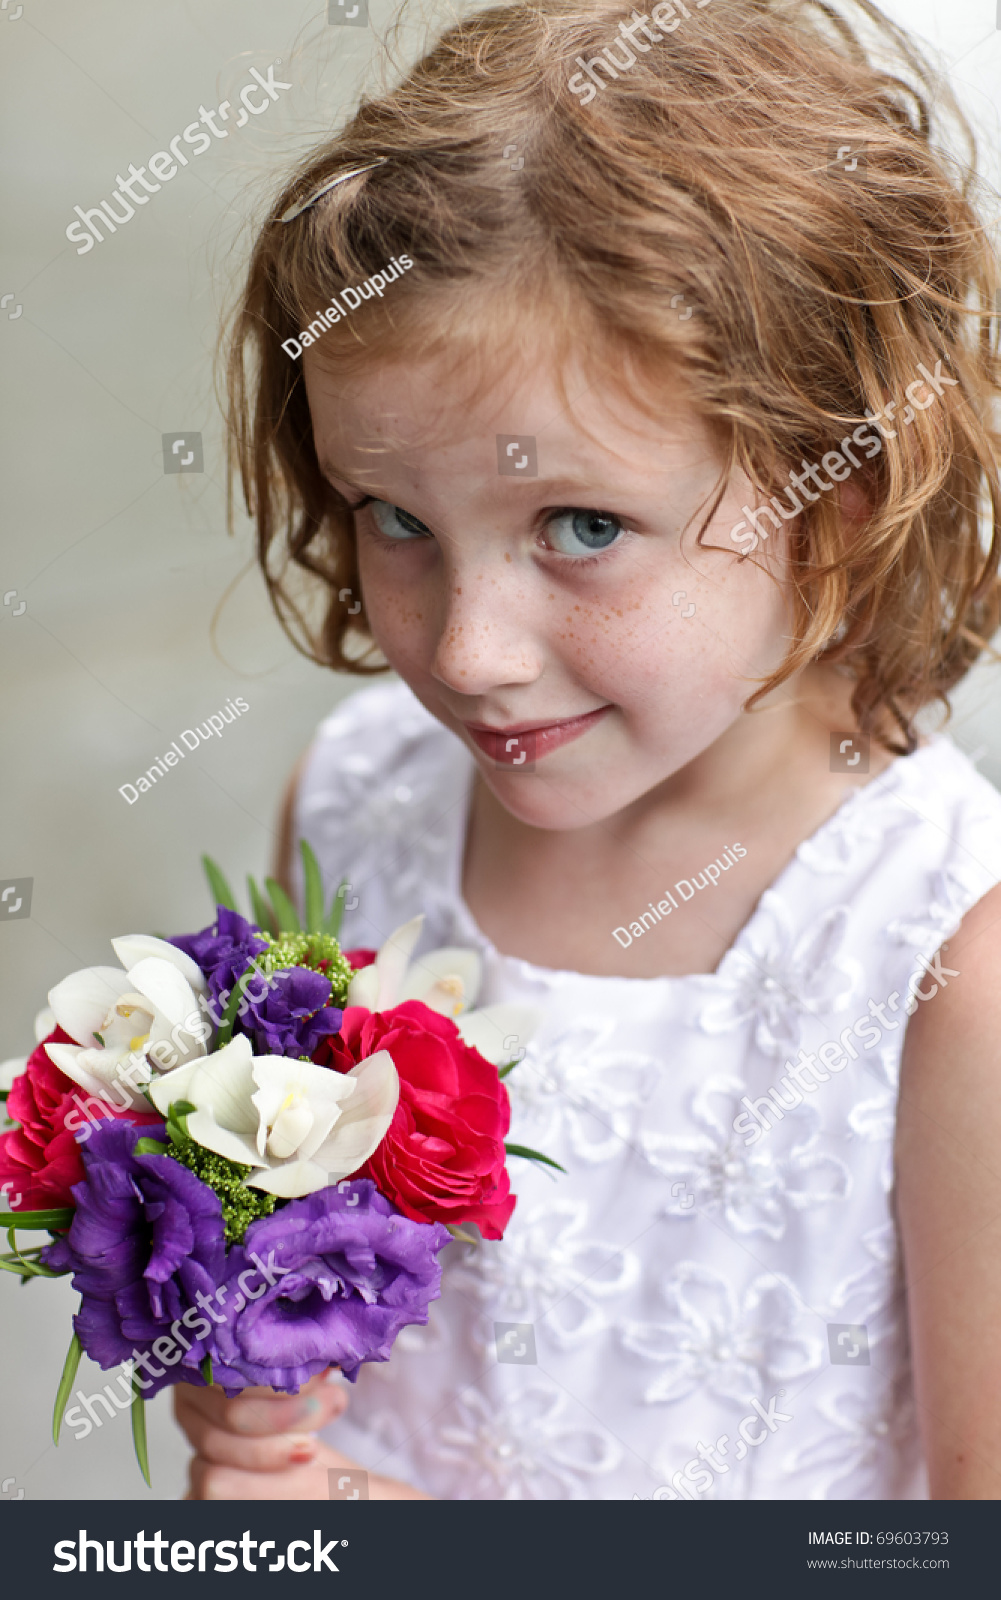 Cute flower girl holding small bouquet stock photo edit now cute flower girl holding a small bouquet of flowers izmirmasajfo